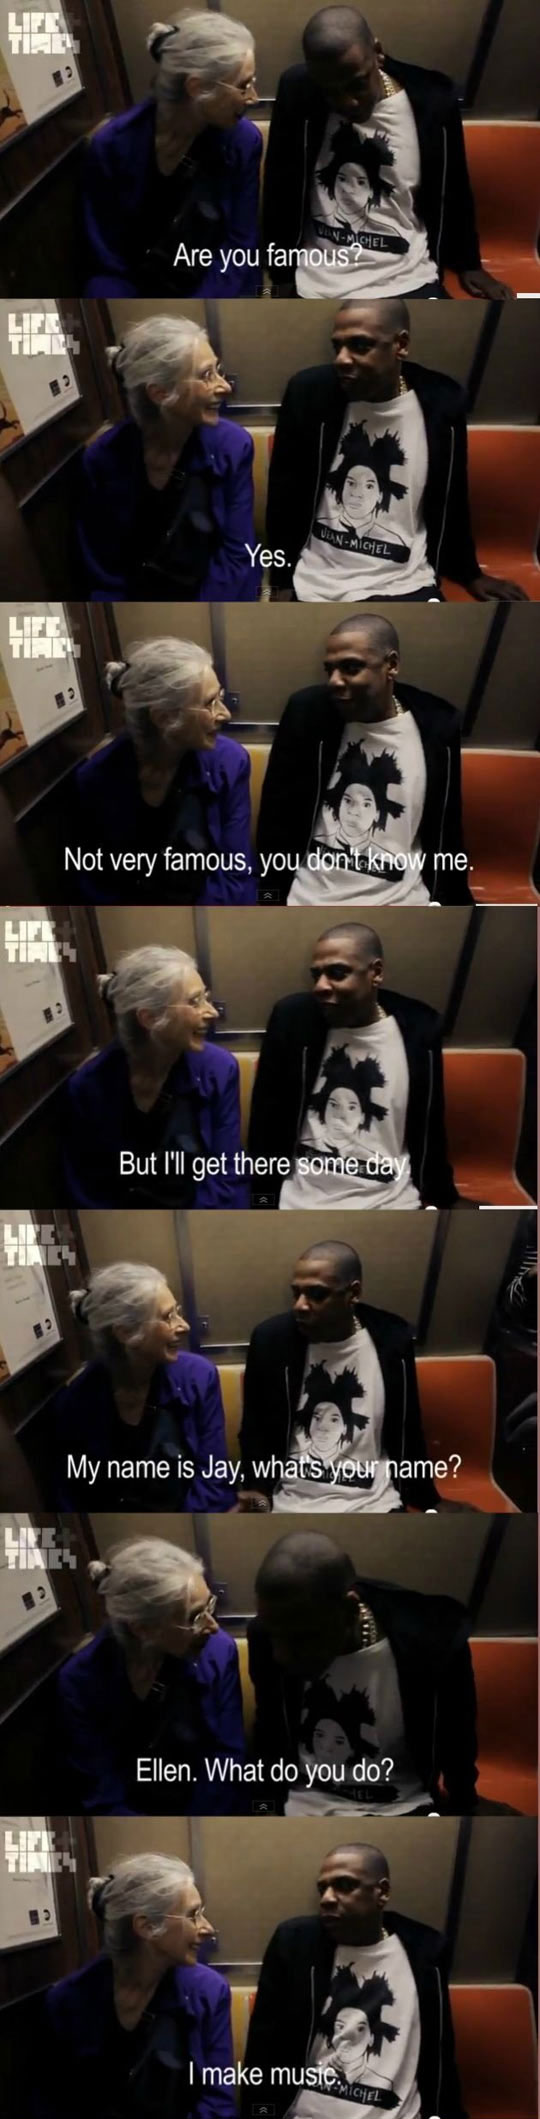 Jay-Z Talking To This Old Lady Is Pretty Damn Adorable